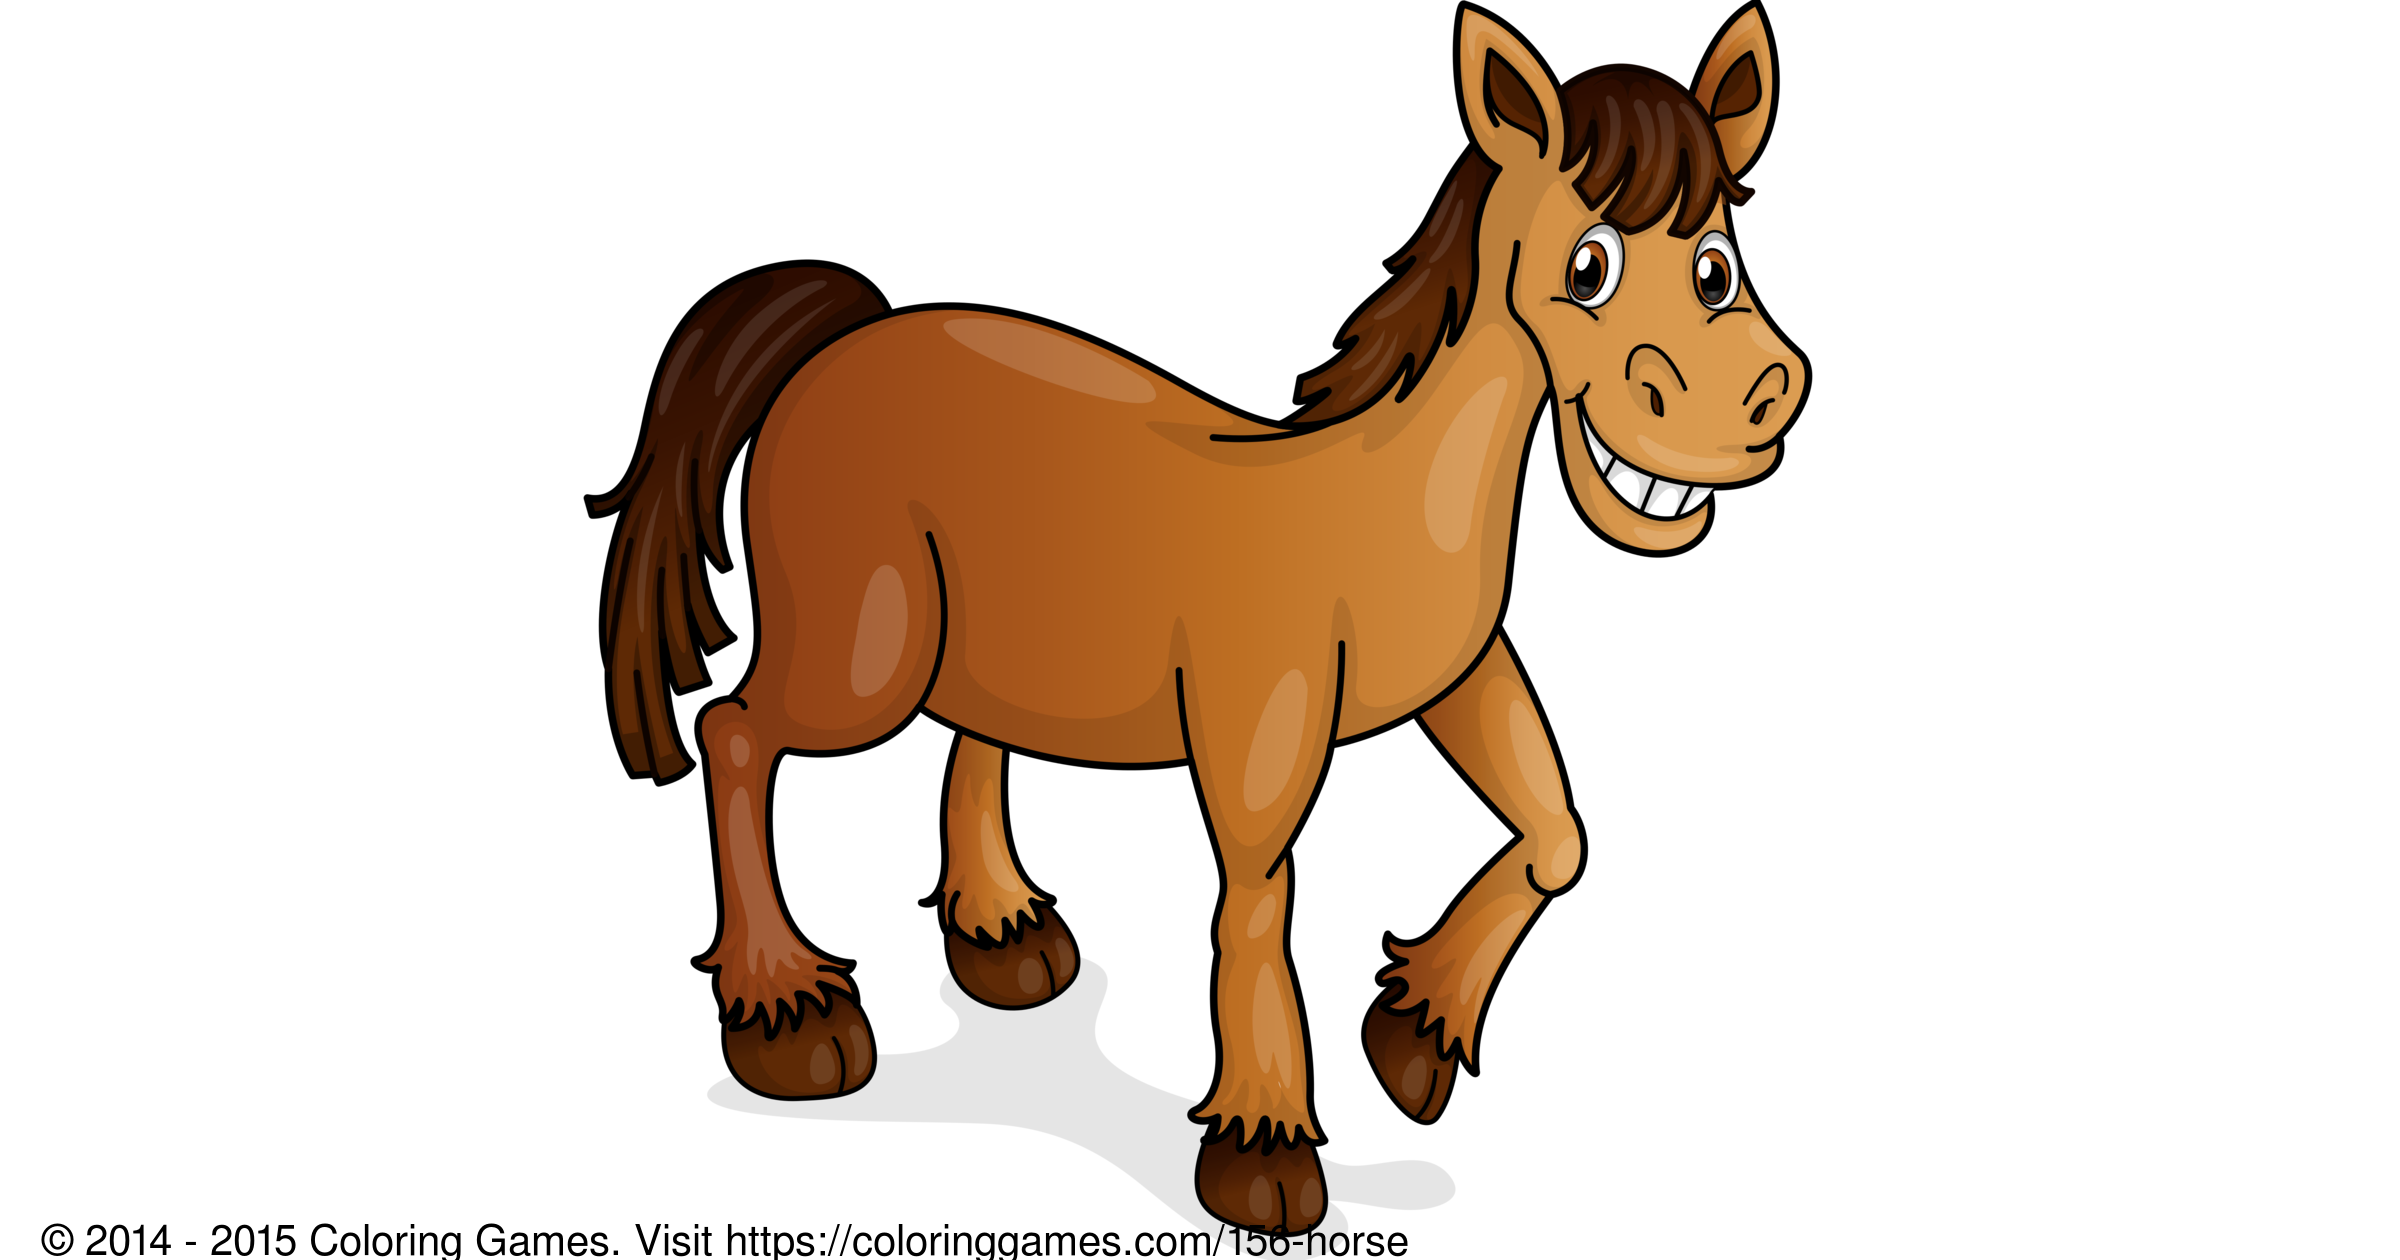 Horse - Coloring Games and Coloring Pages